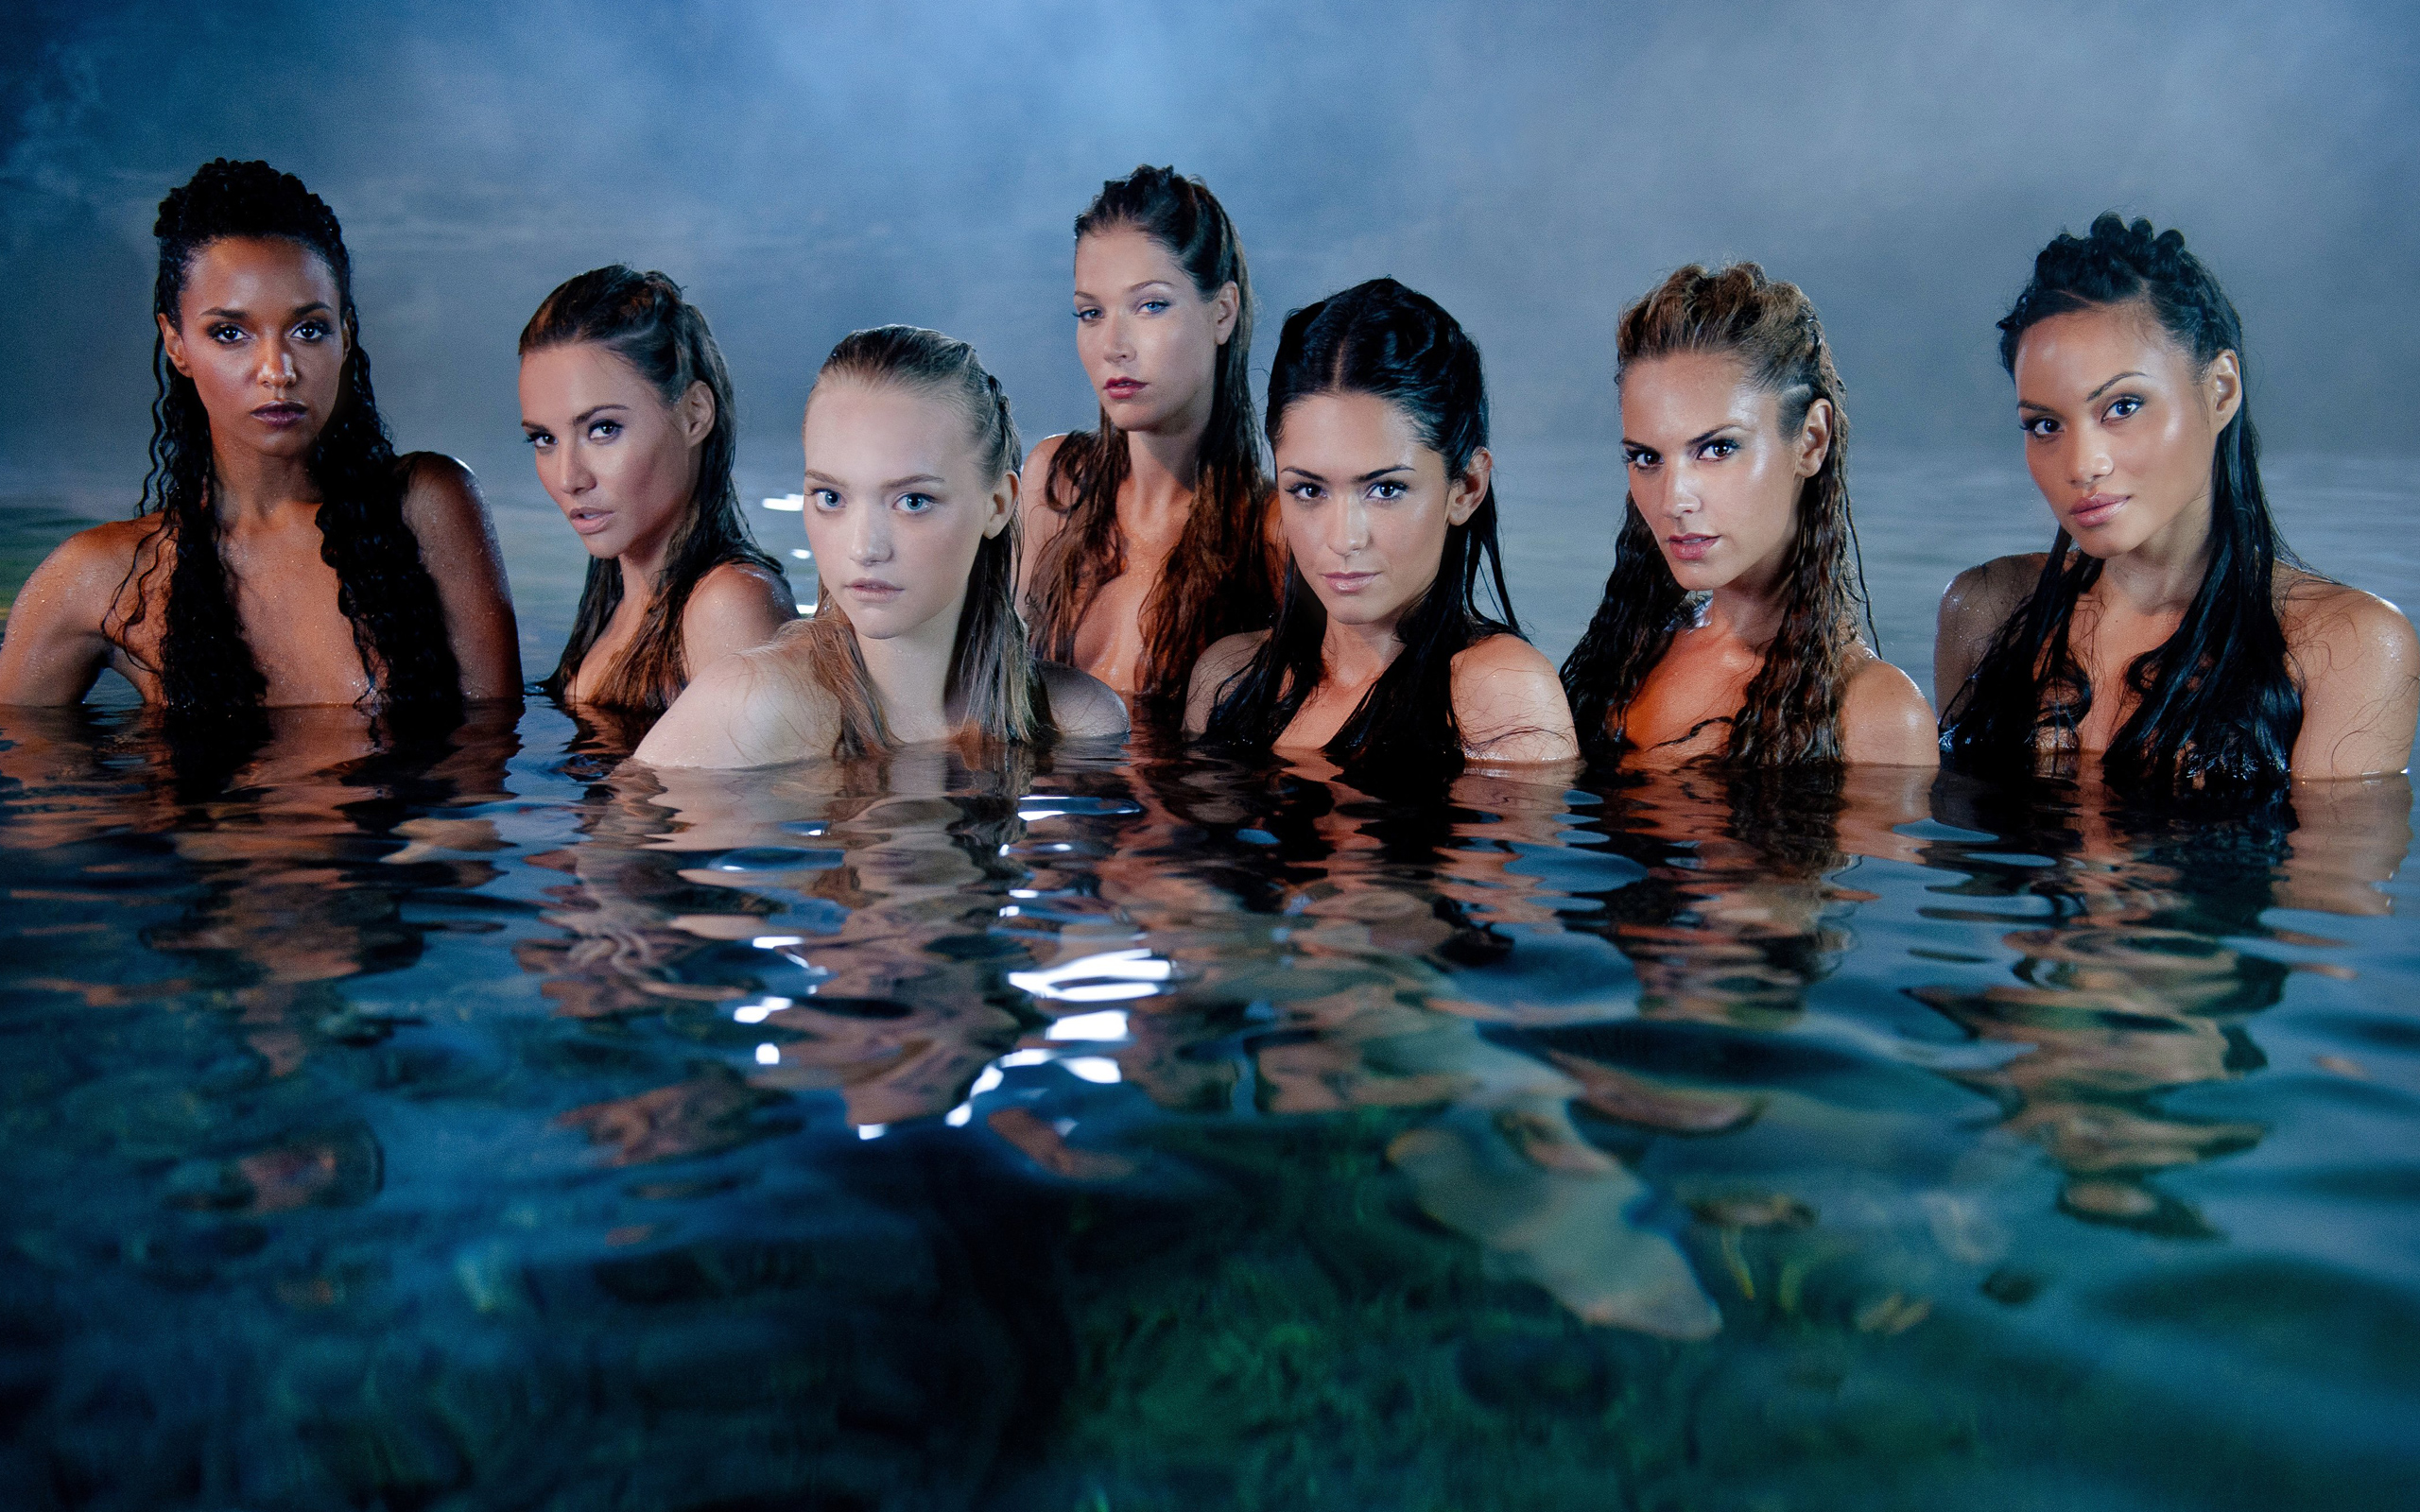 Mermaids in Pirates of the Caribbean Wallpapers HD Wallpapers 2560x1600